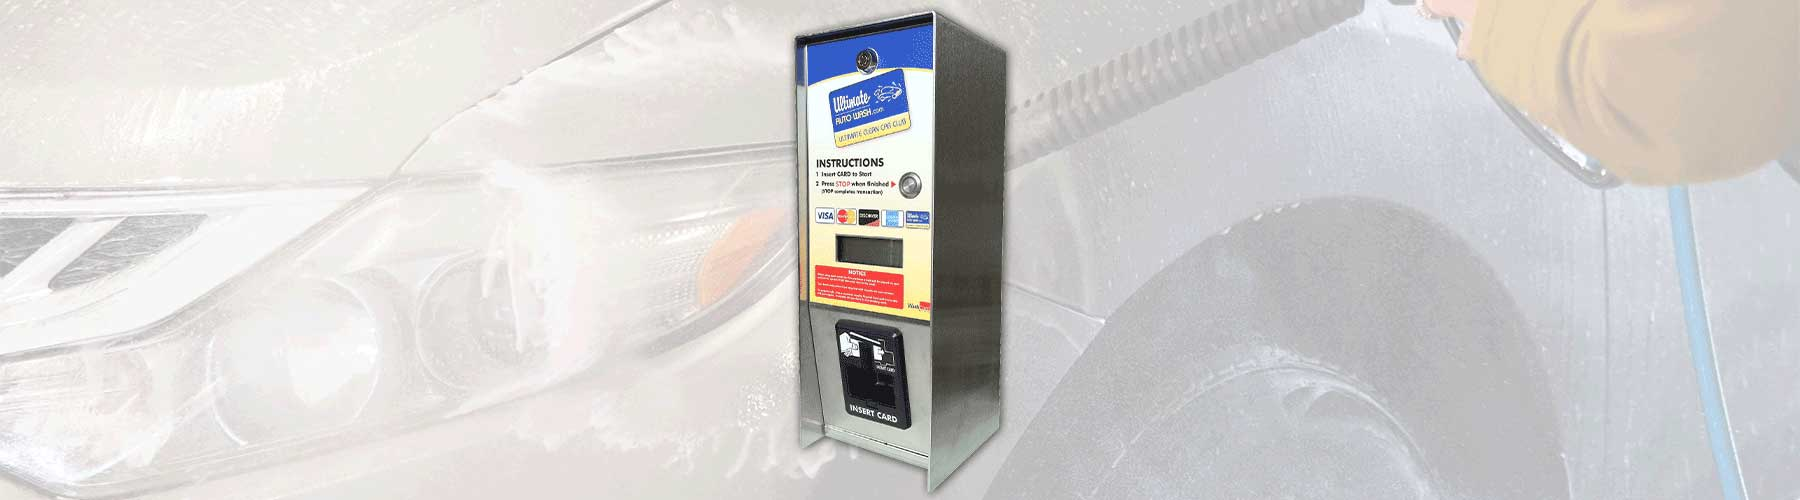 Self Service Terminal Bay for credit card and loyalty